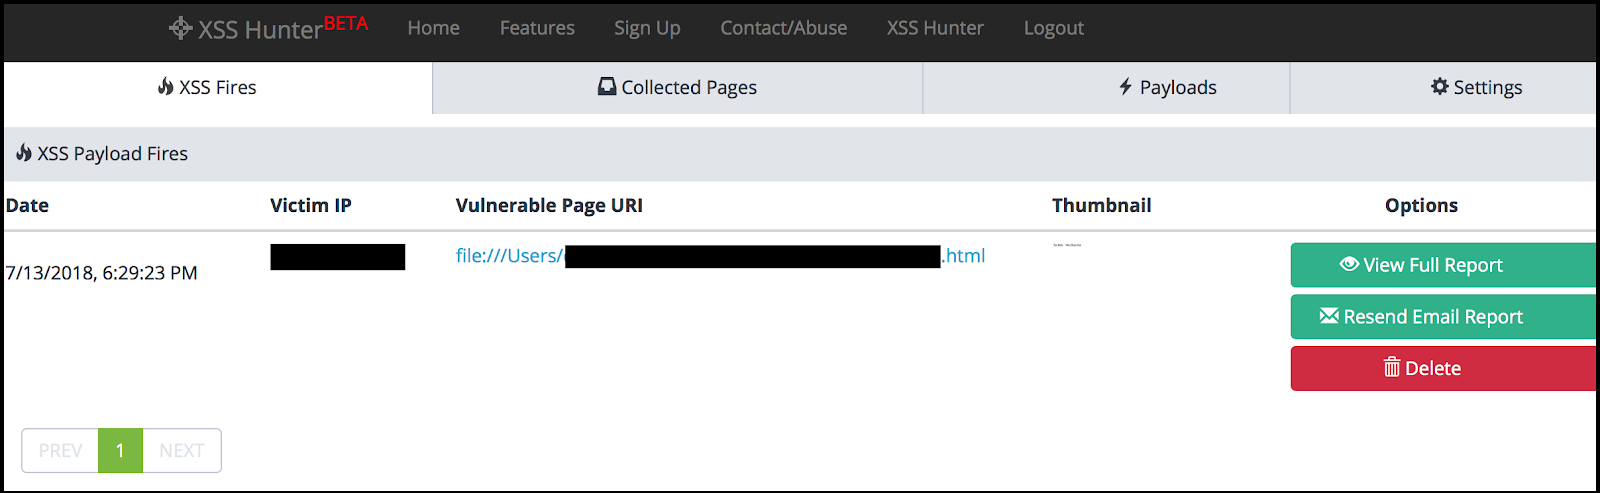 Building Your Own XSS Hunter in AWS ~ SmeegeSec